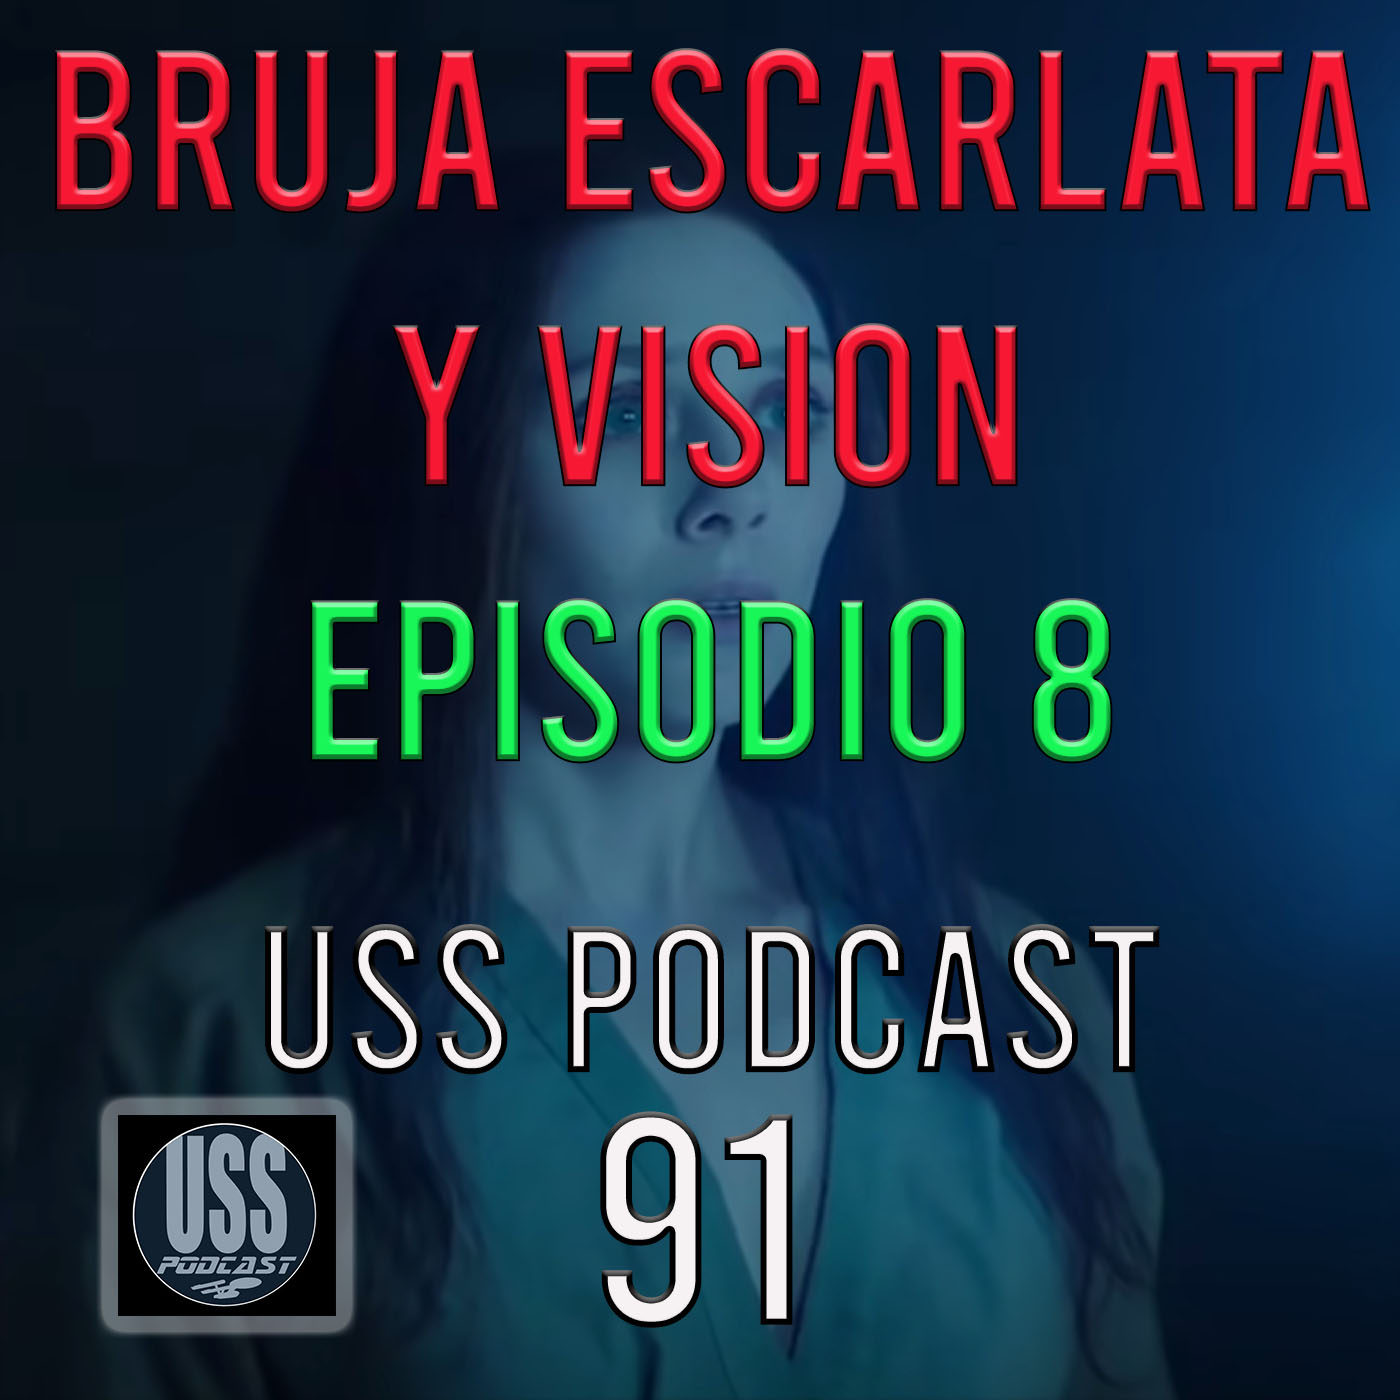 Bruja Escarlata y Vision Episodio 8 USS Podcast 91